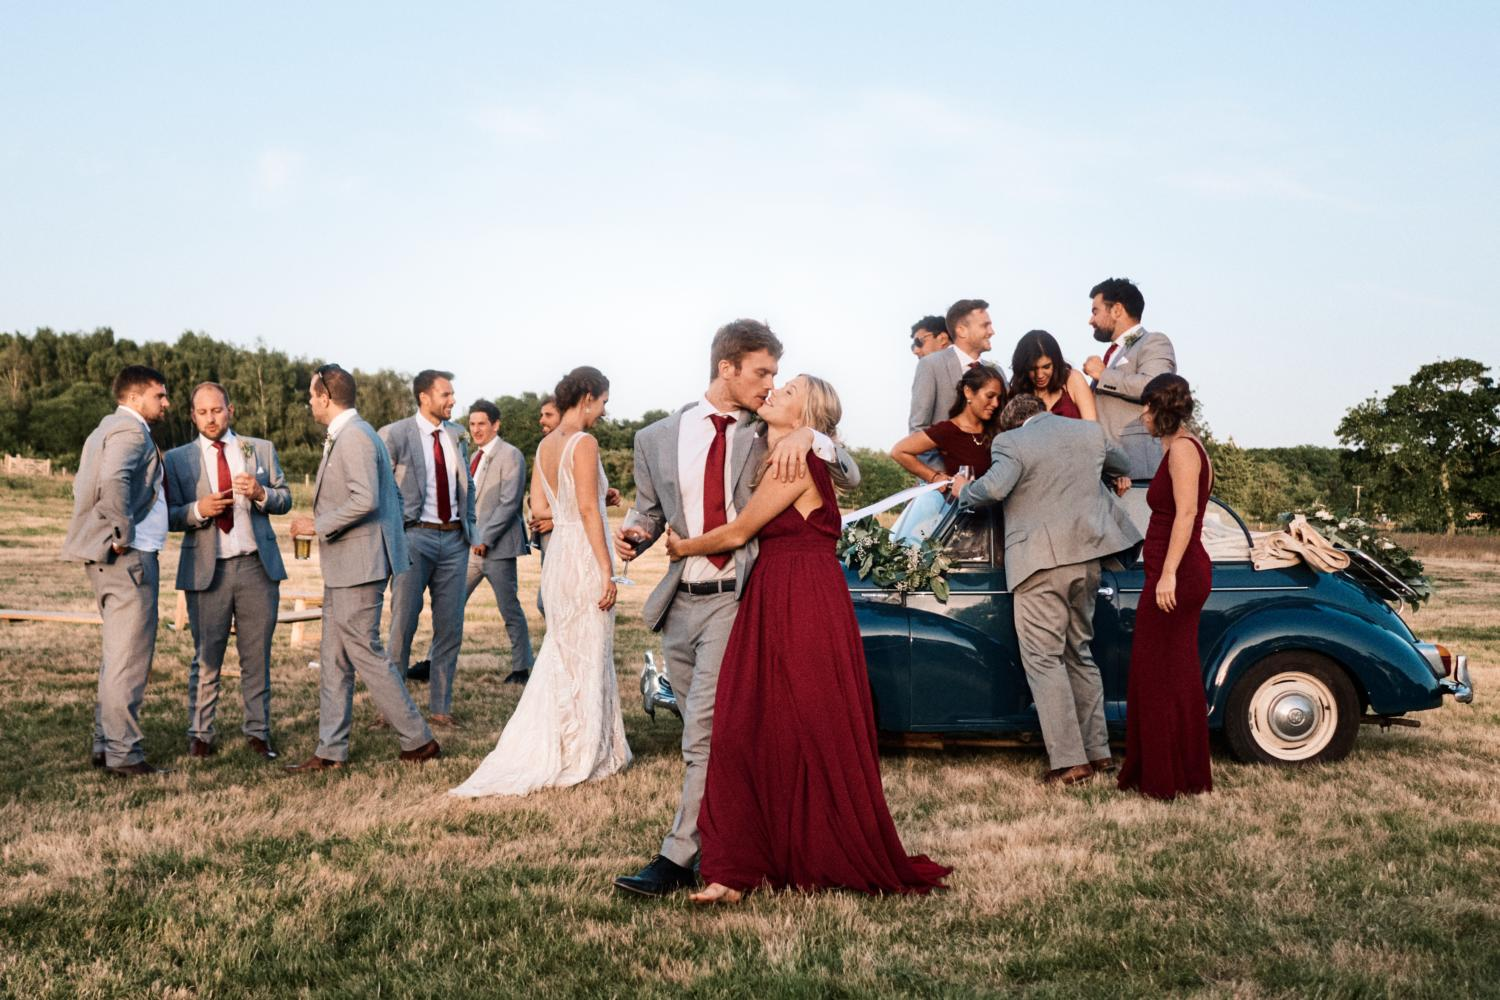 Bridal party climb out of convertible car in a field